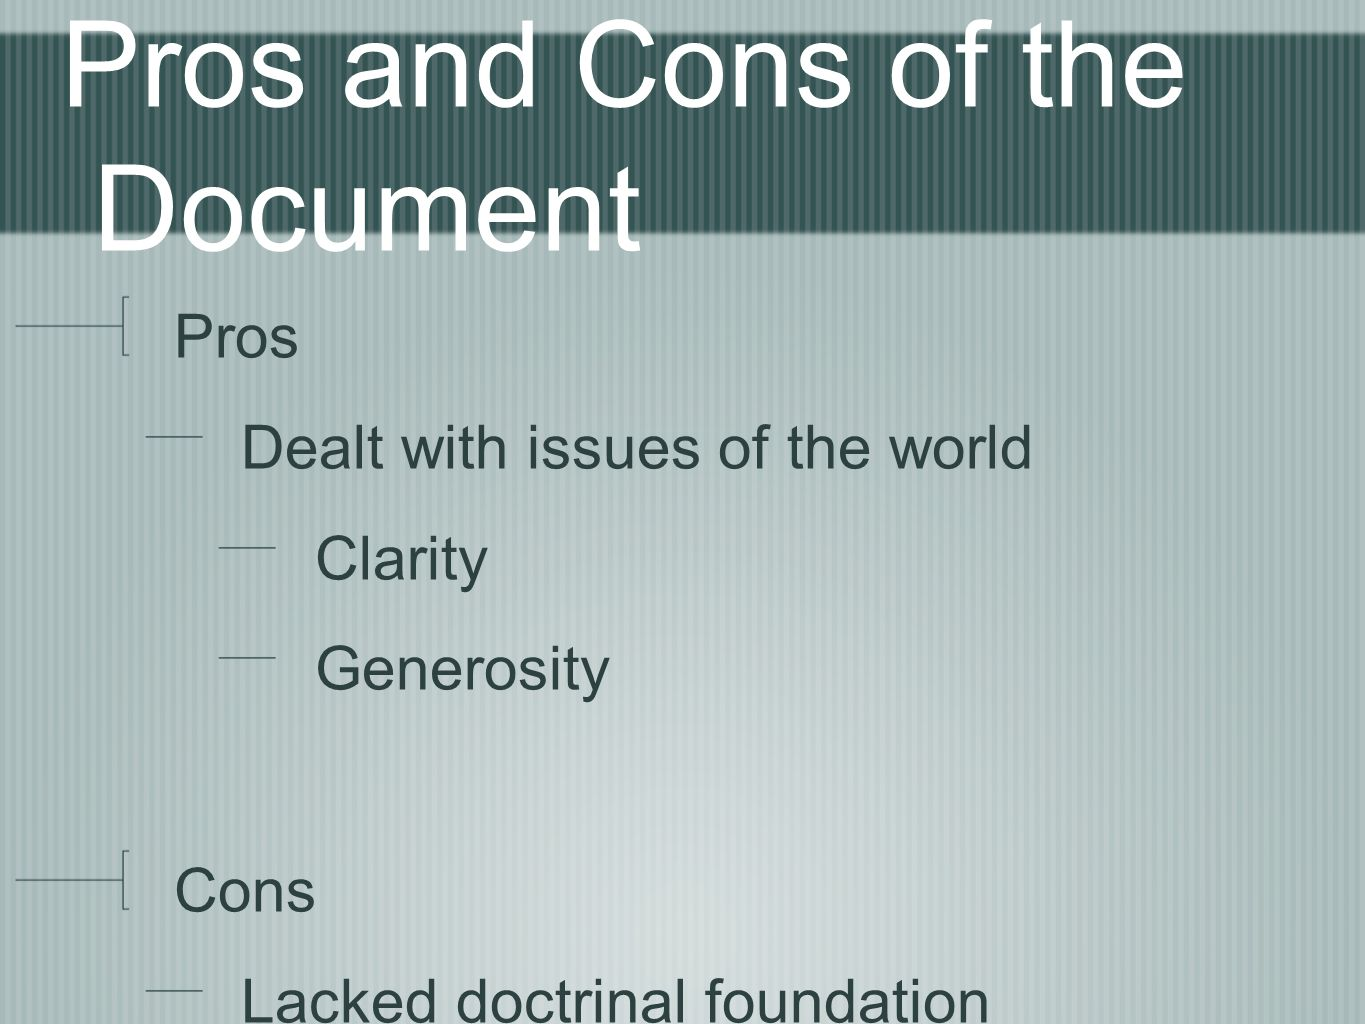 Pros and Cons of the Document Pros Dealt with issues of the world Clarity Generosity Cons Lacked doctrinal foundation